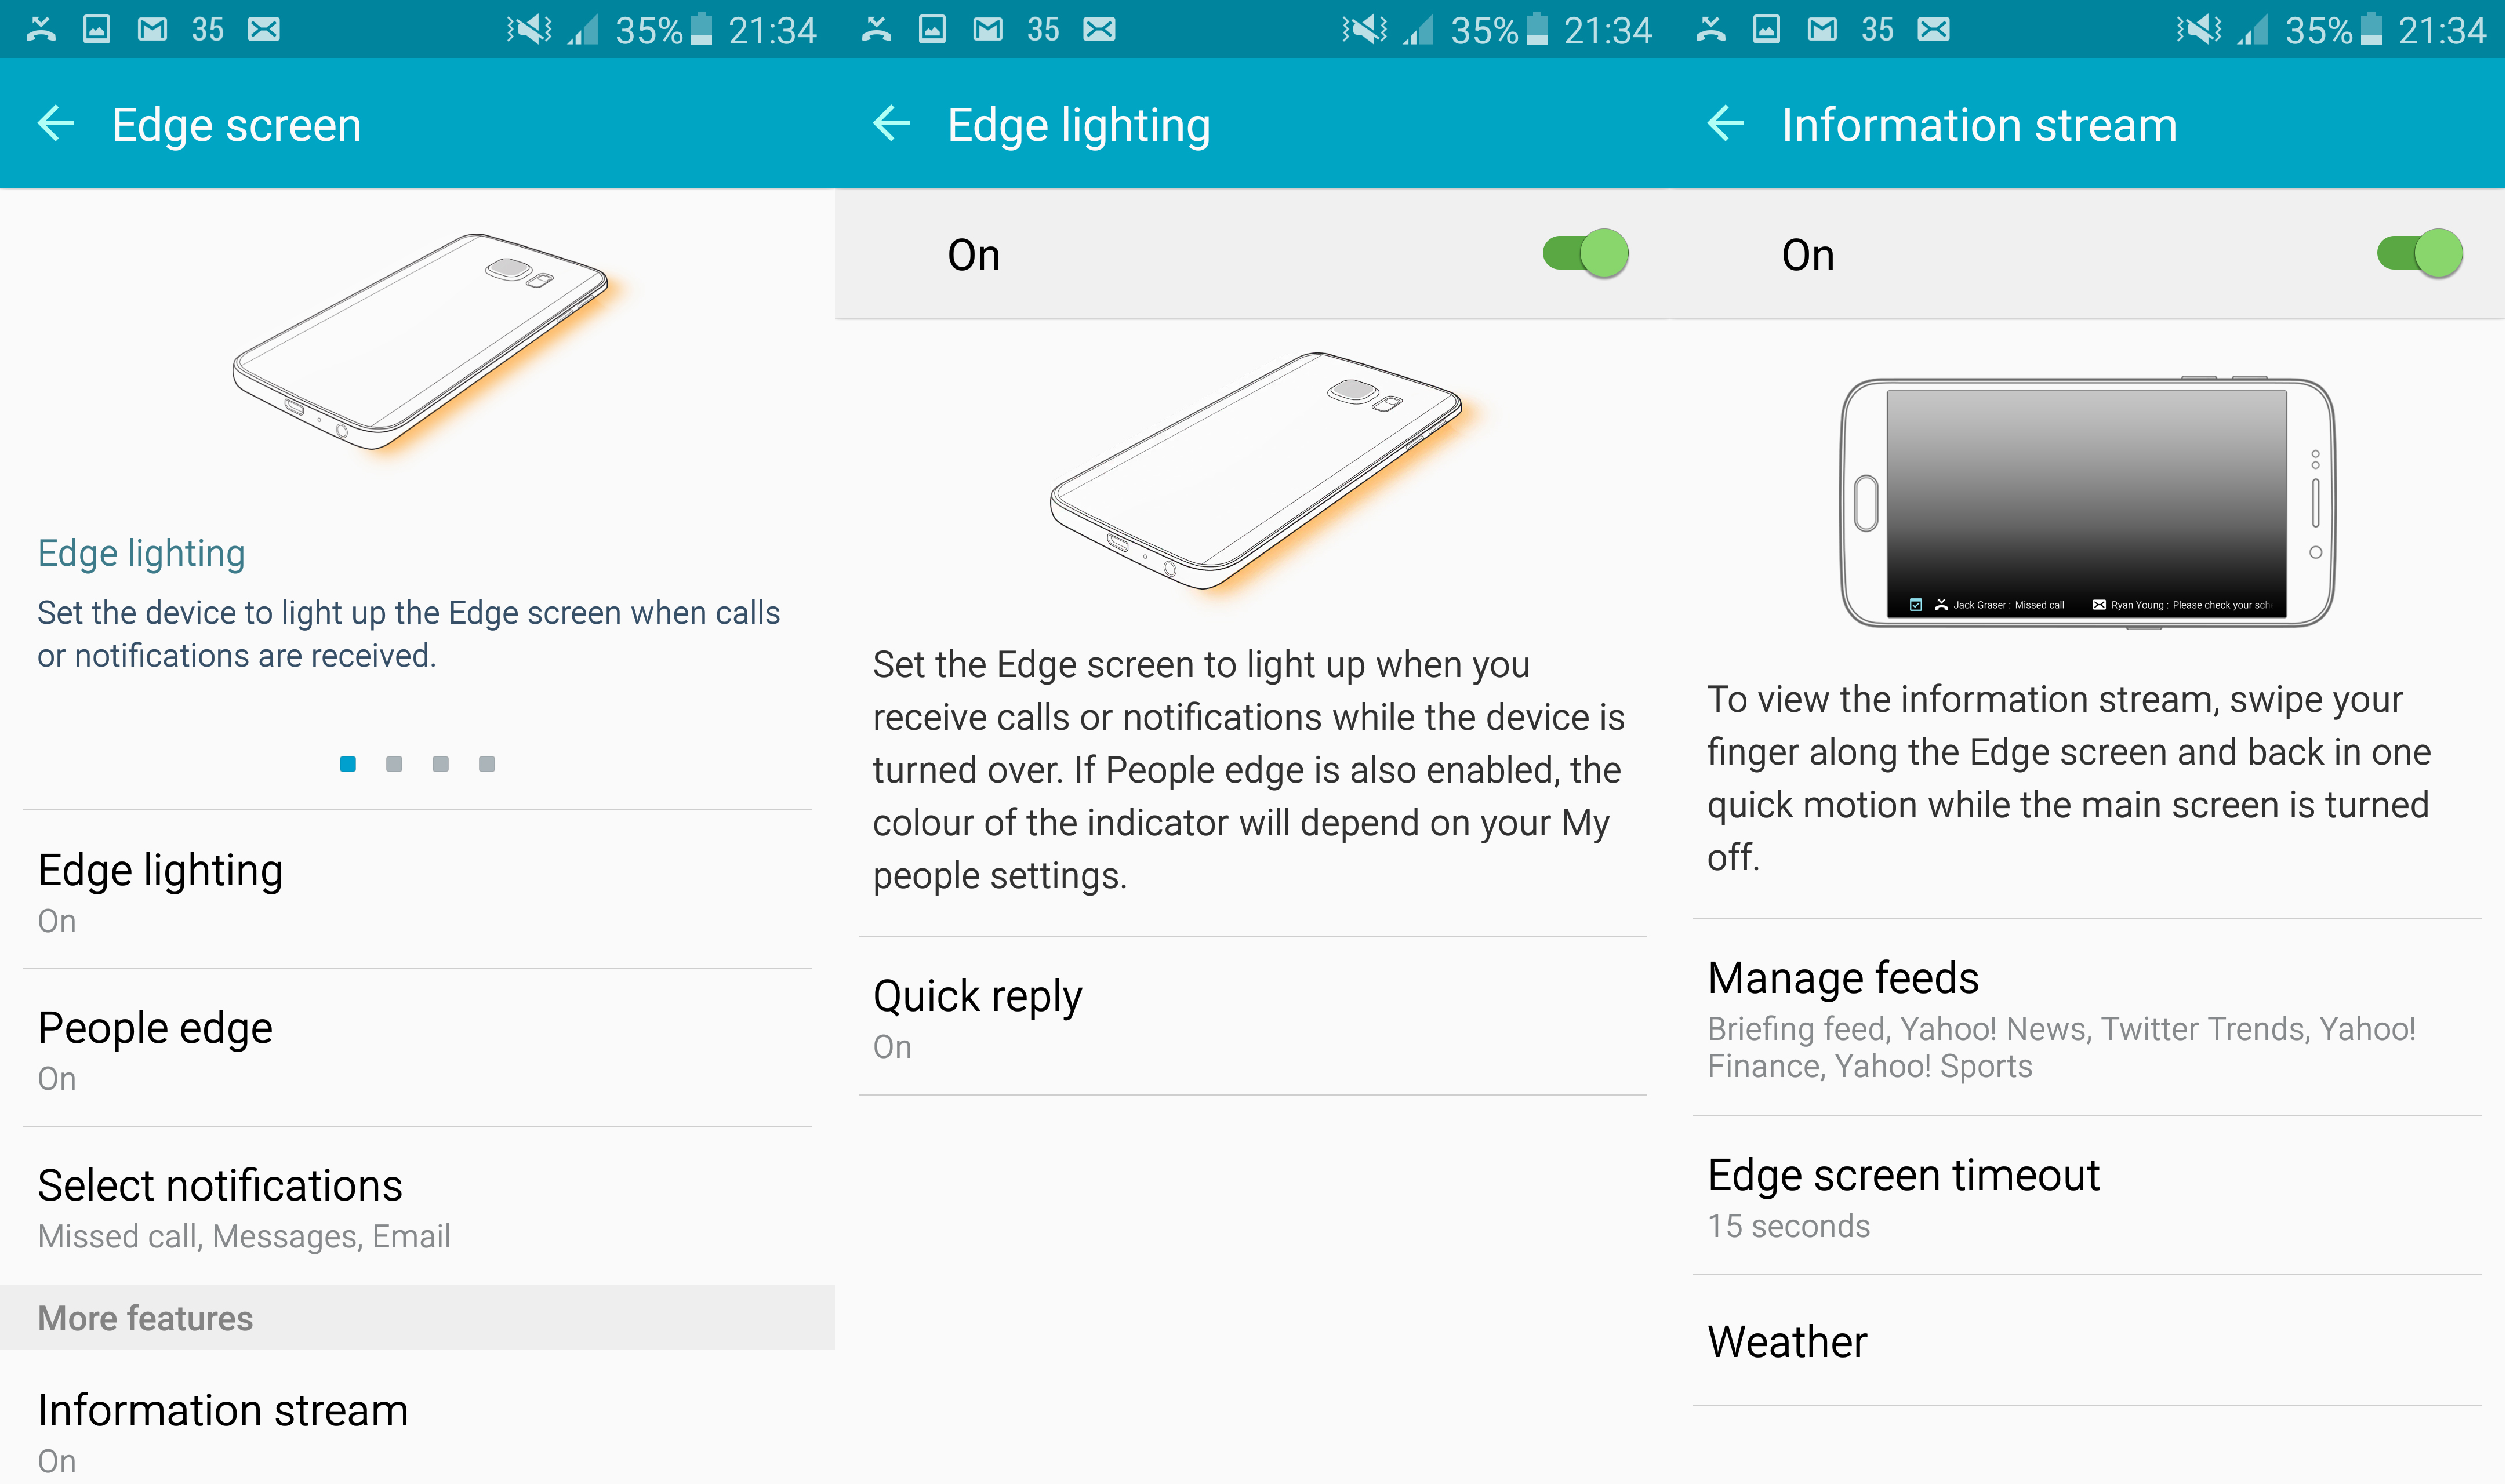 Samsung Galaxy S6 Edge Display Settings Information Stream Screen